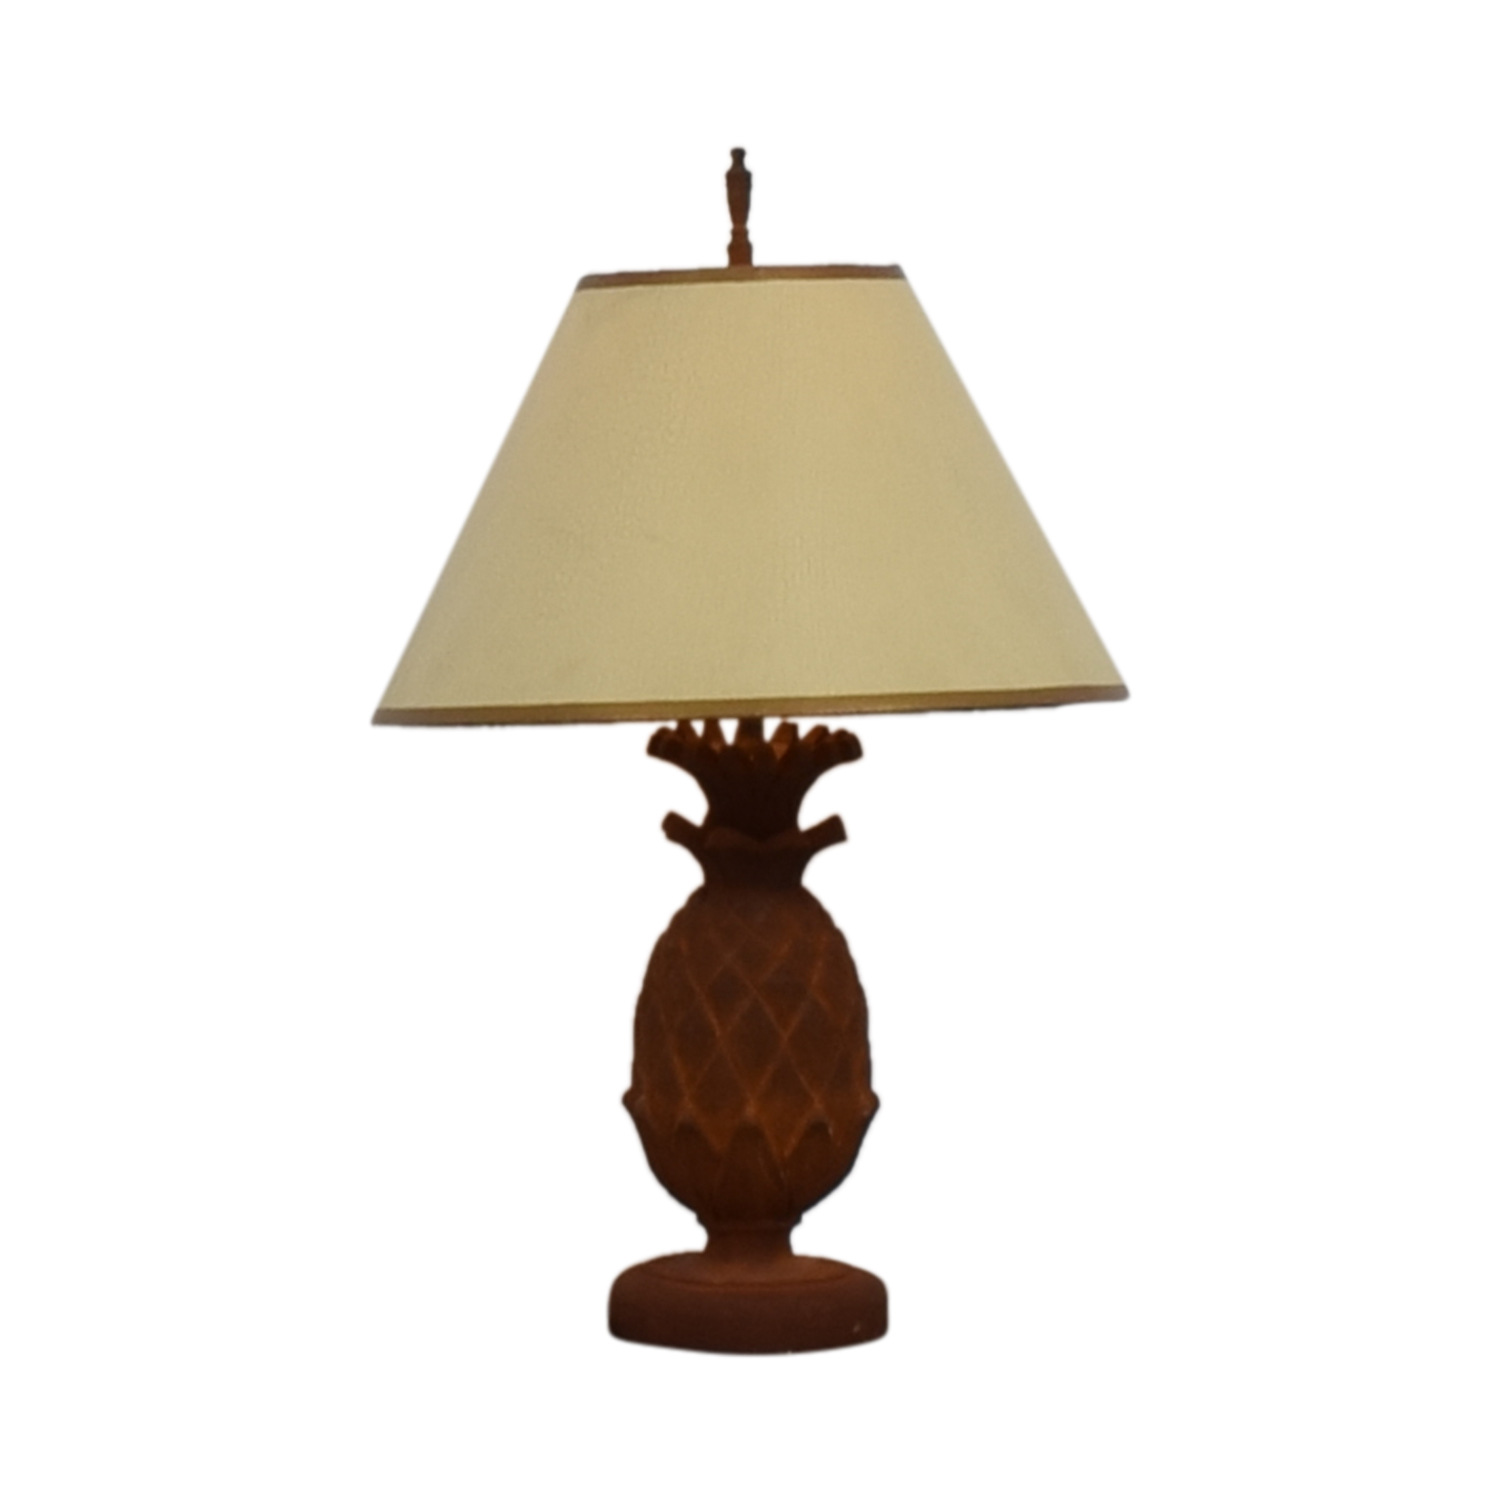 Terra-Cotta Pineapple Desk Lamp for sale